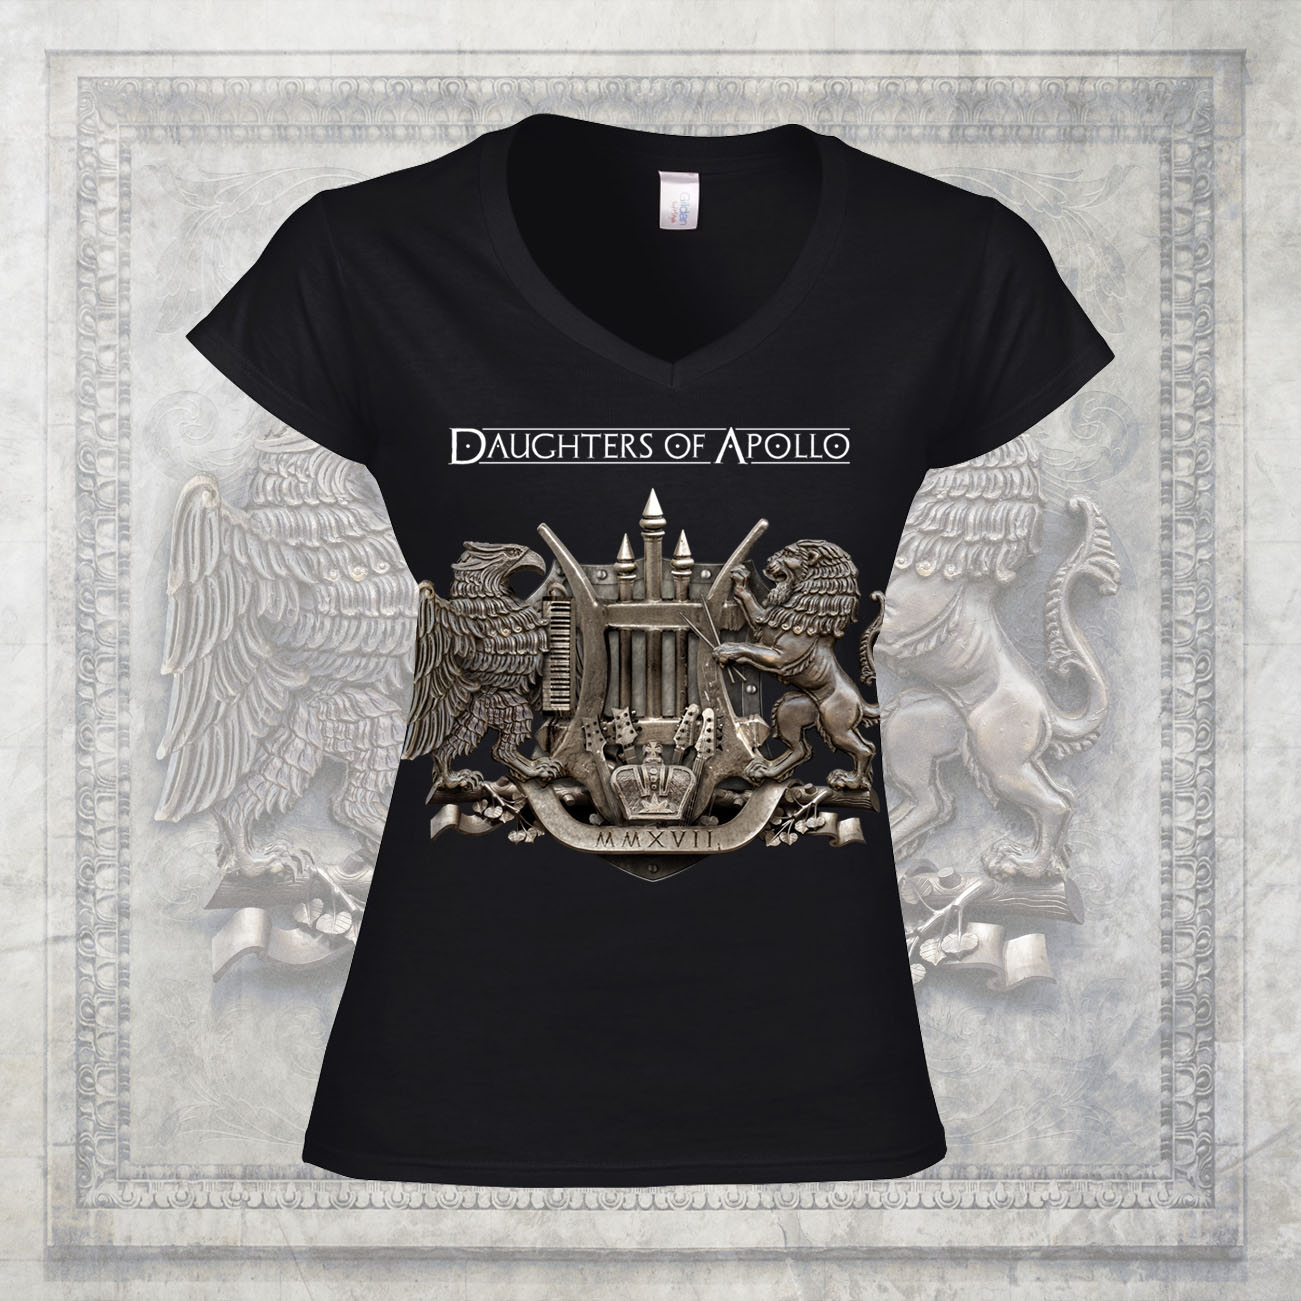 Sons of Apollo - 'Daughters...' V-Neck T-Shirt - Sons of Apollo